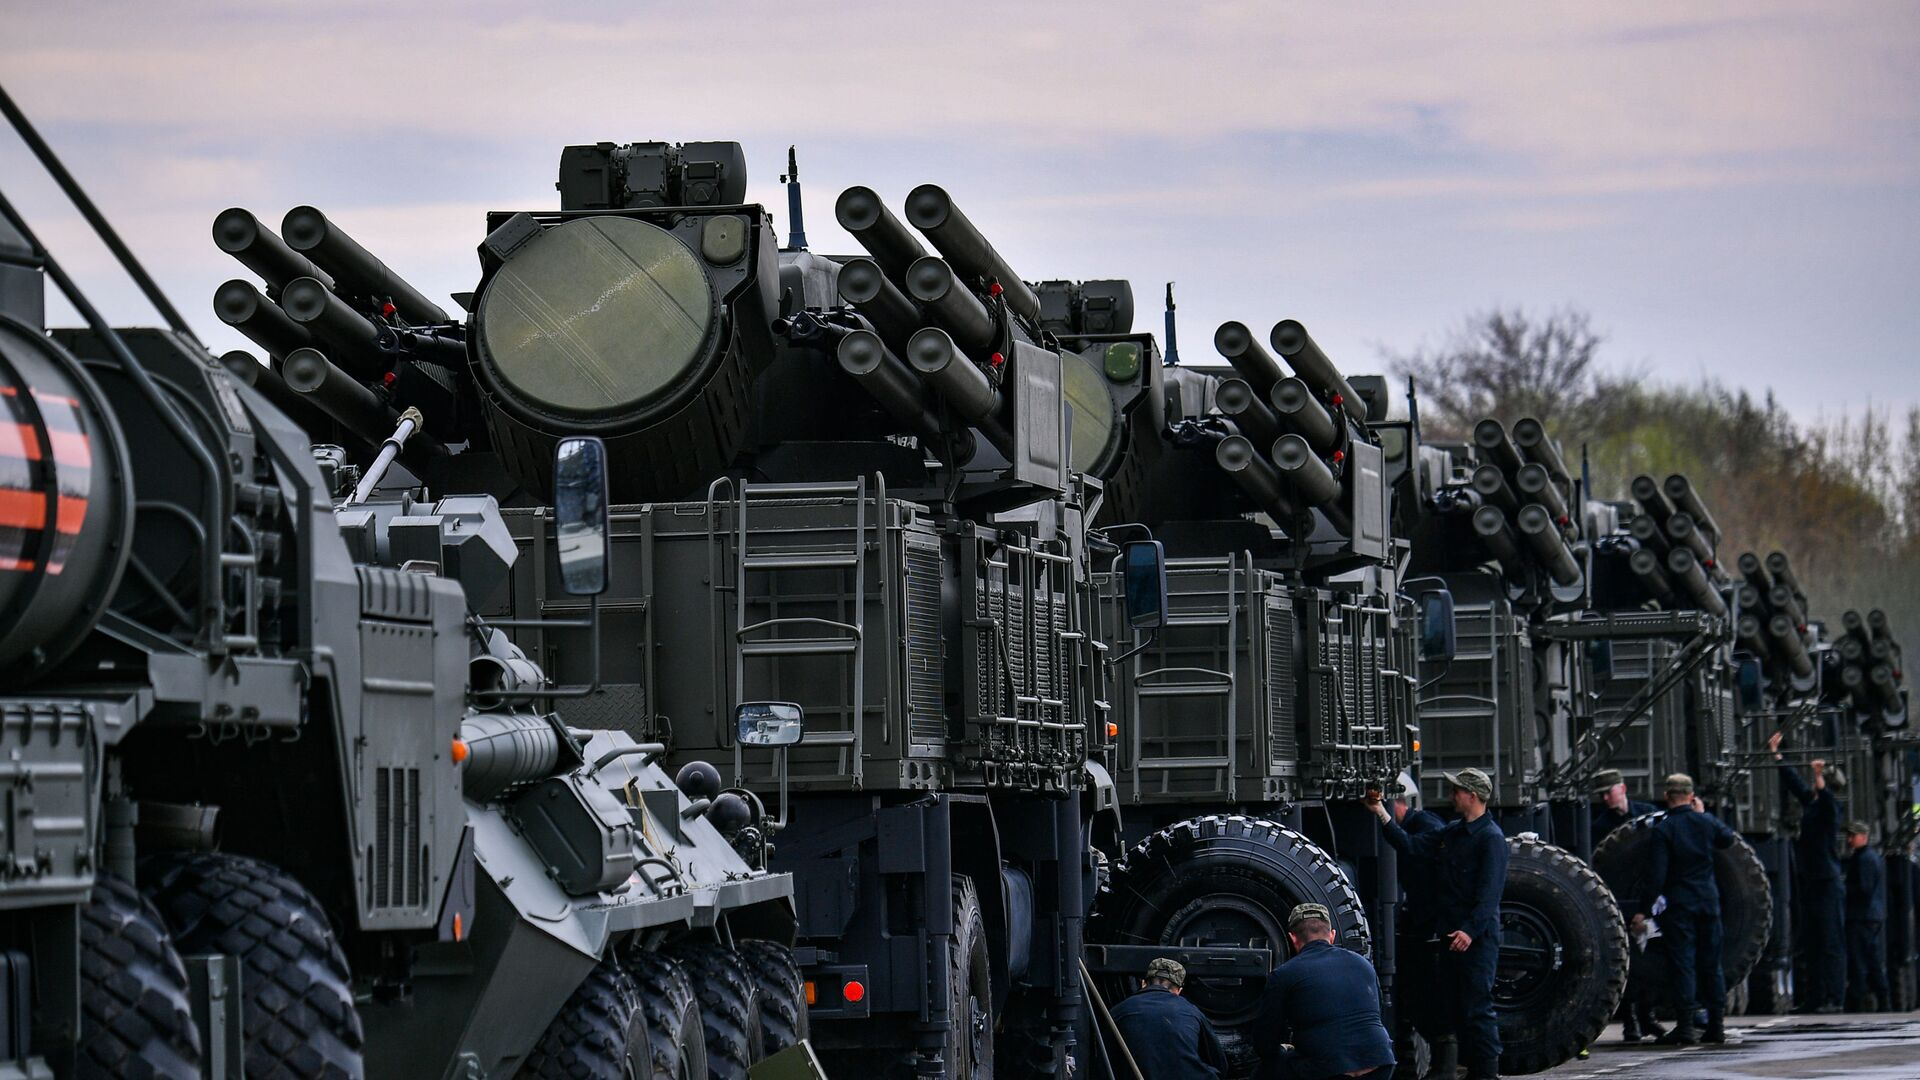 The Pantsir-S mobile self-propelled surface-to-air anti-aircraft system vehicles are parked during its preparation for the upcoming Victory Day Military Parade, in Moscow, Russia. - Sputnik International, 1920, 18.09.2021